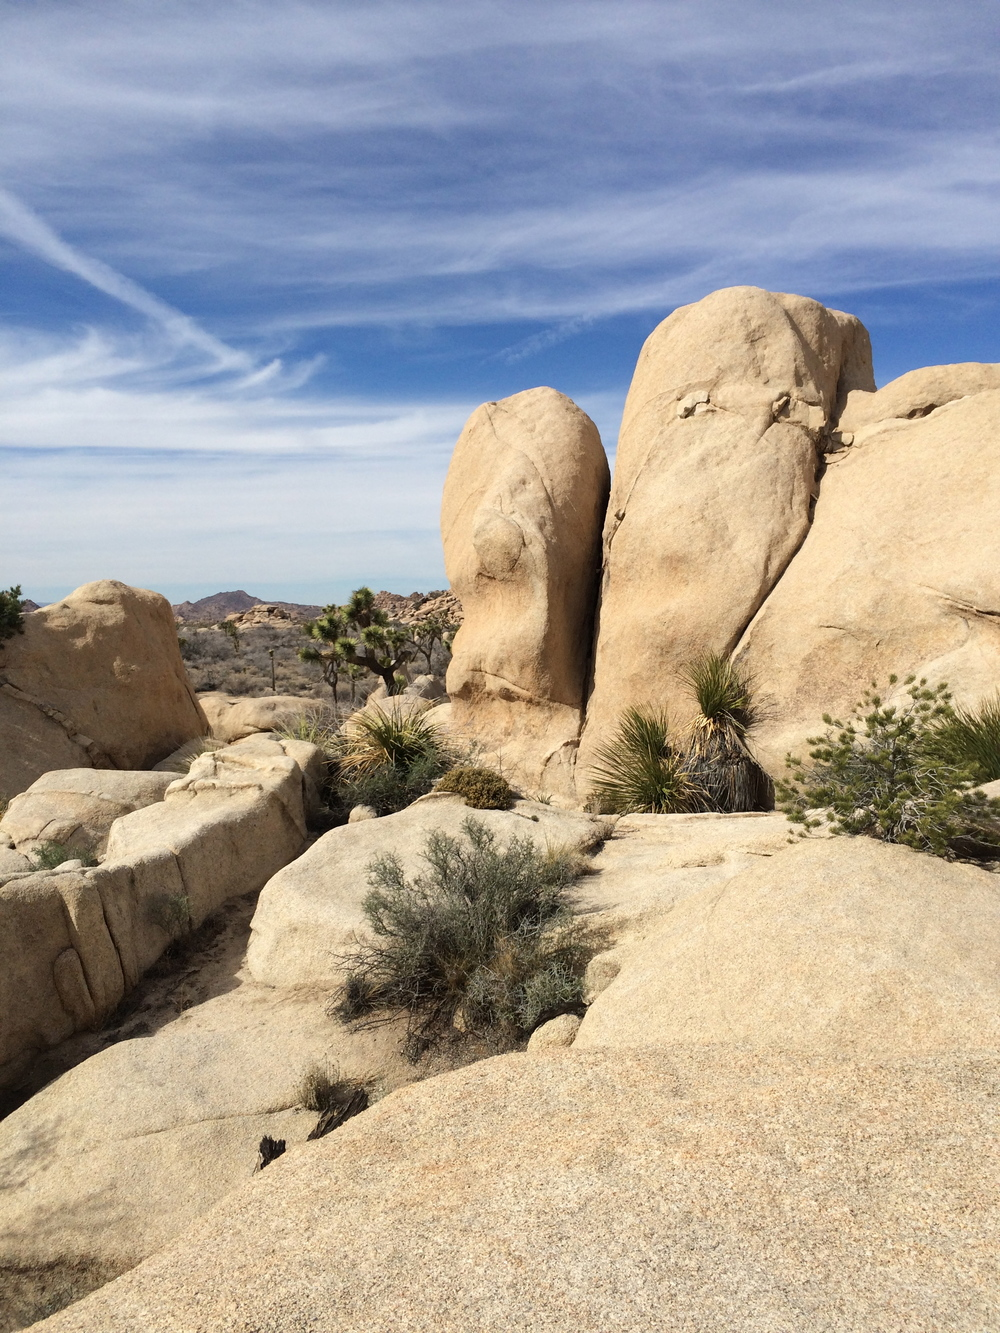 Flintstone Office - Joshua Tree